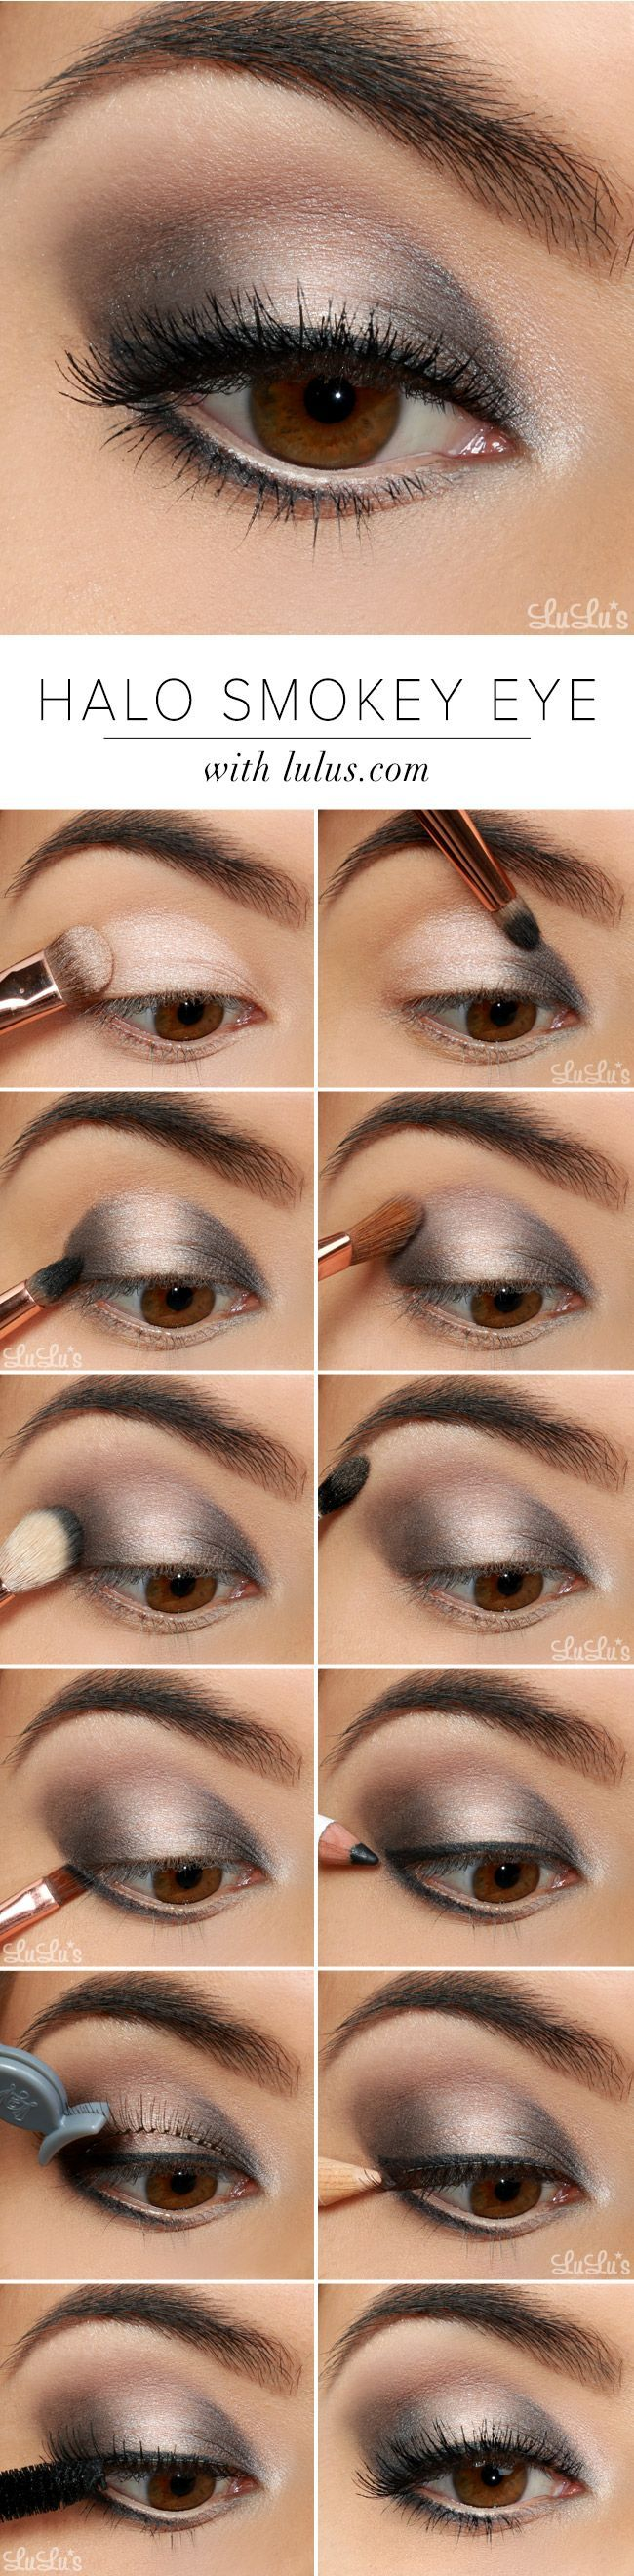 LuLu*s How-To: Halo Smokey Eye Shadow Tutorial at www.lulus.com/!